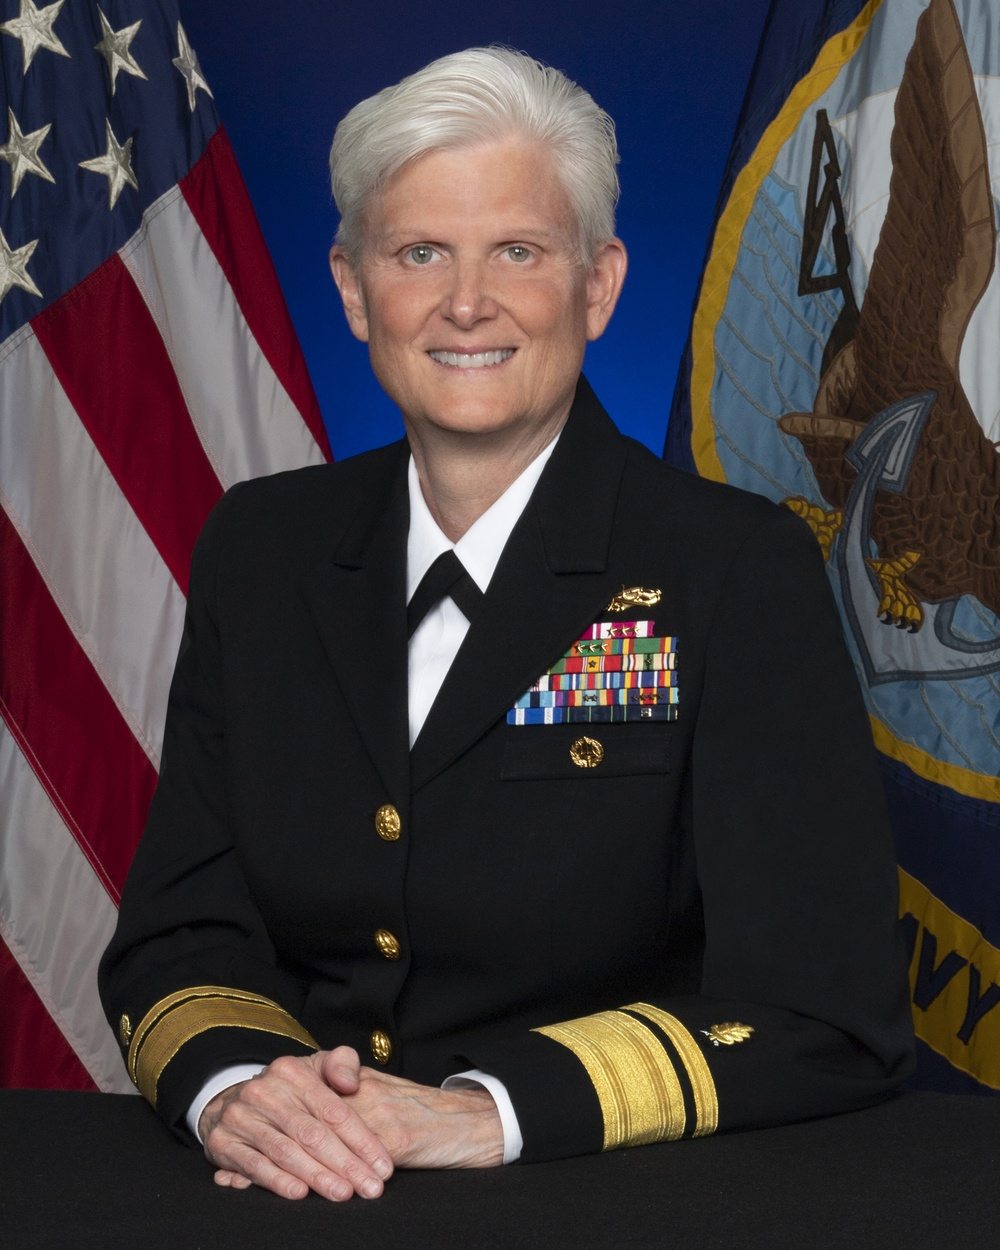 RADM Gayle D. Shaffer to Serve as US Navy Deputy Surgeon General and Deputy Chief, Bureau of Medicine and Surgery